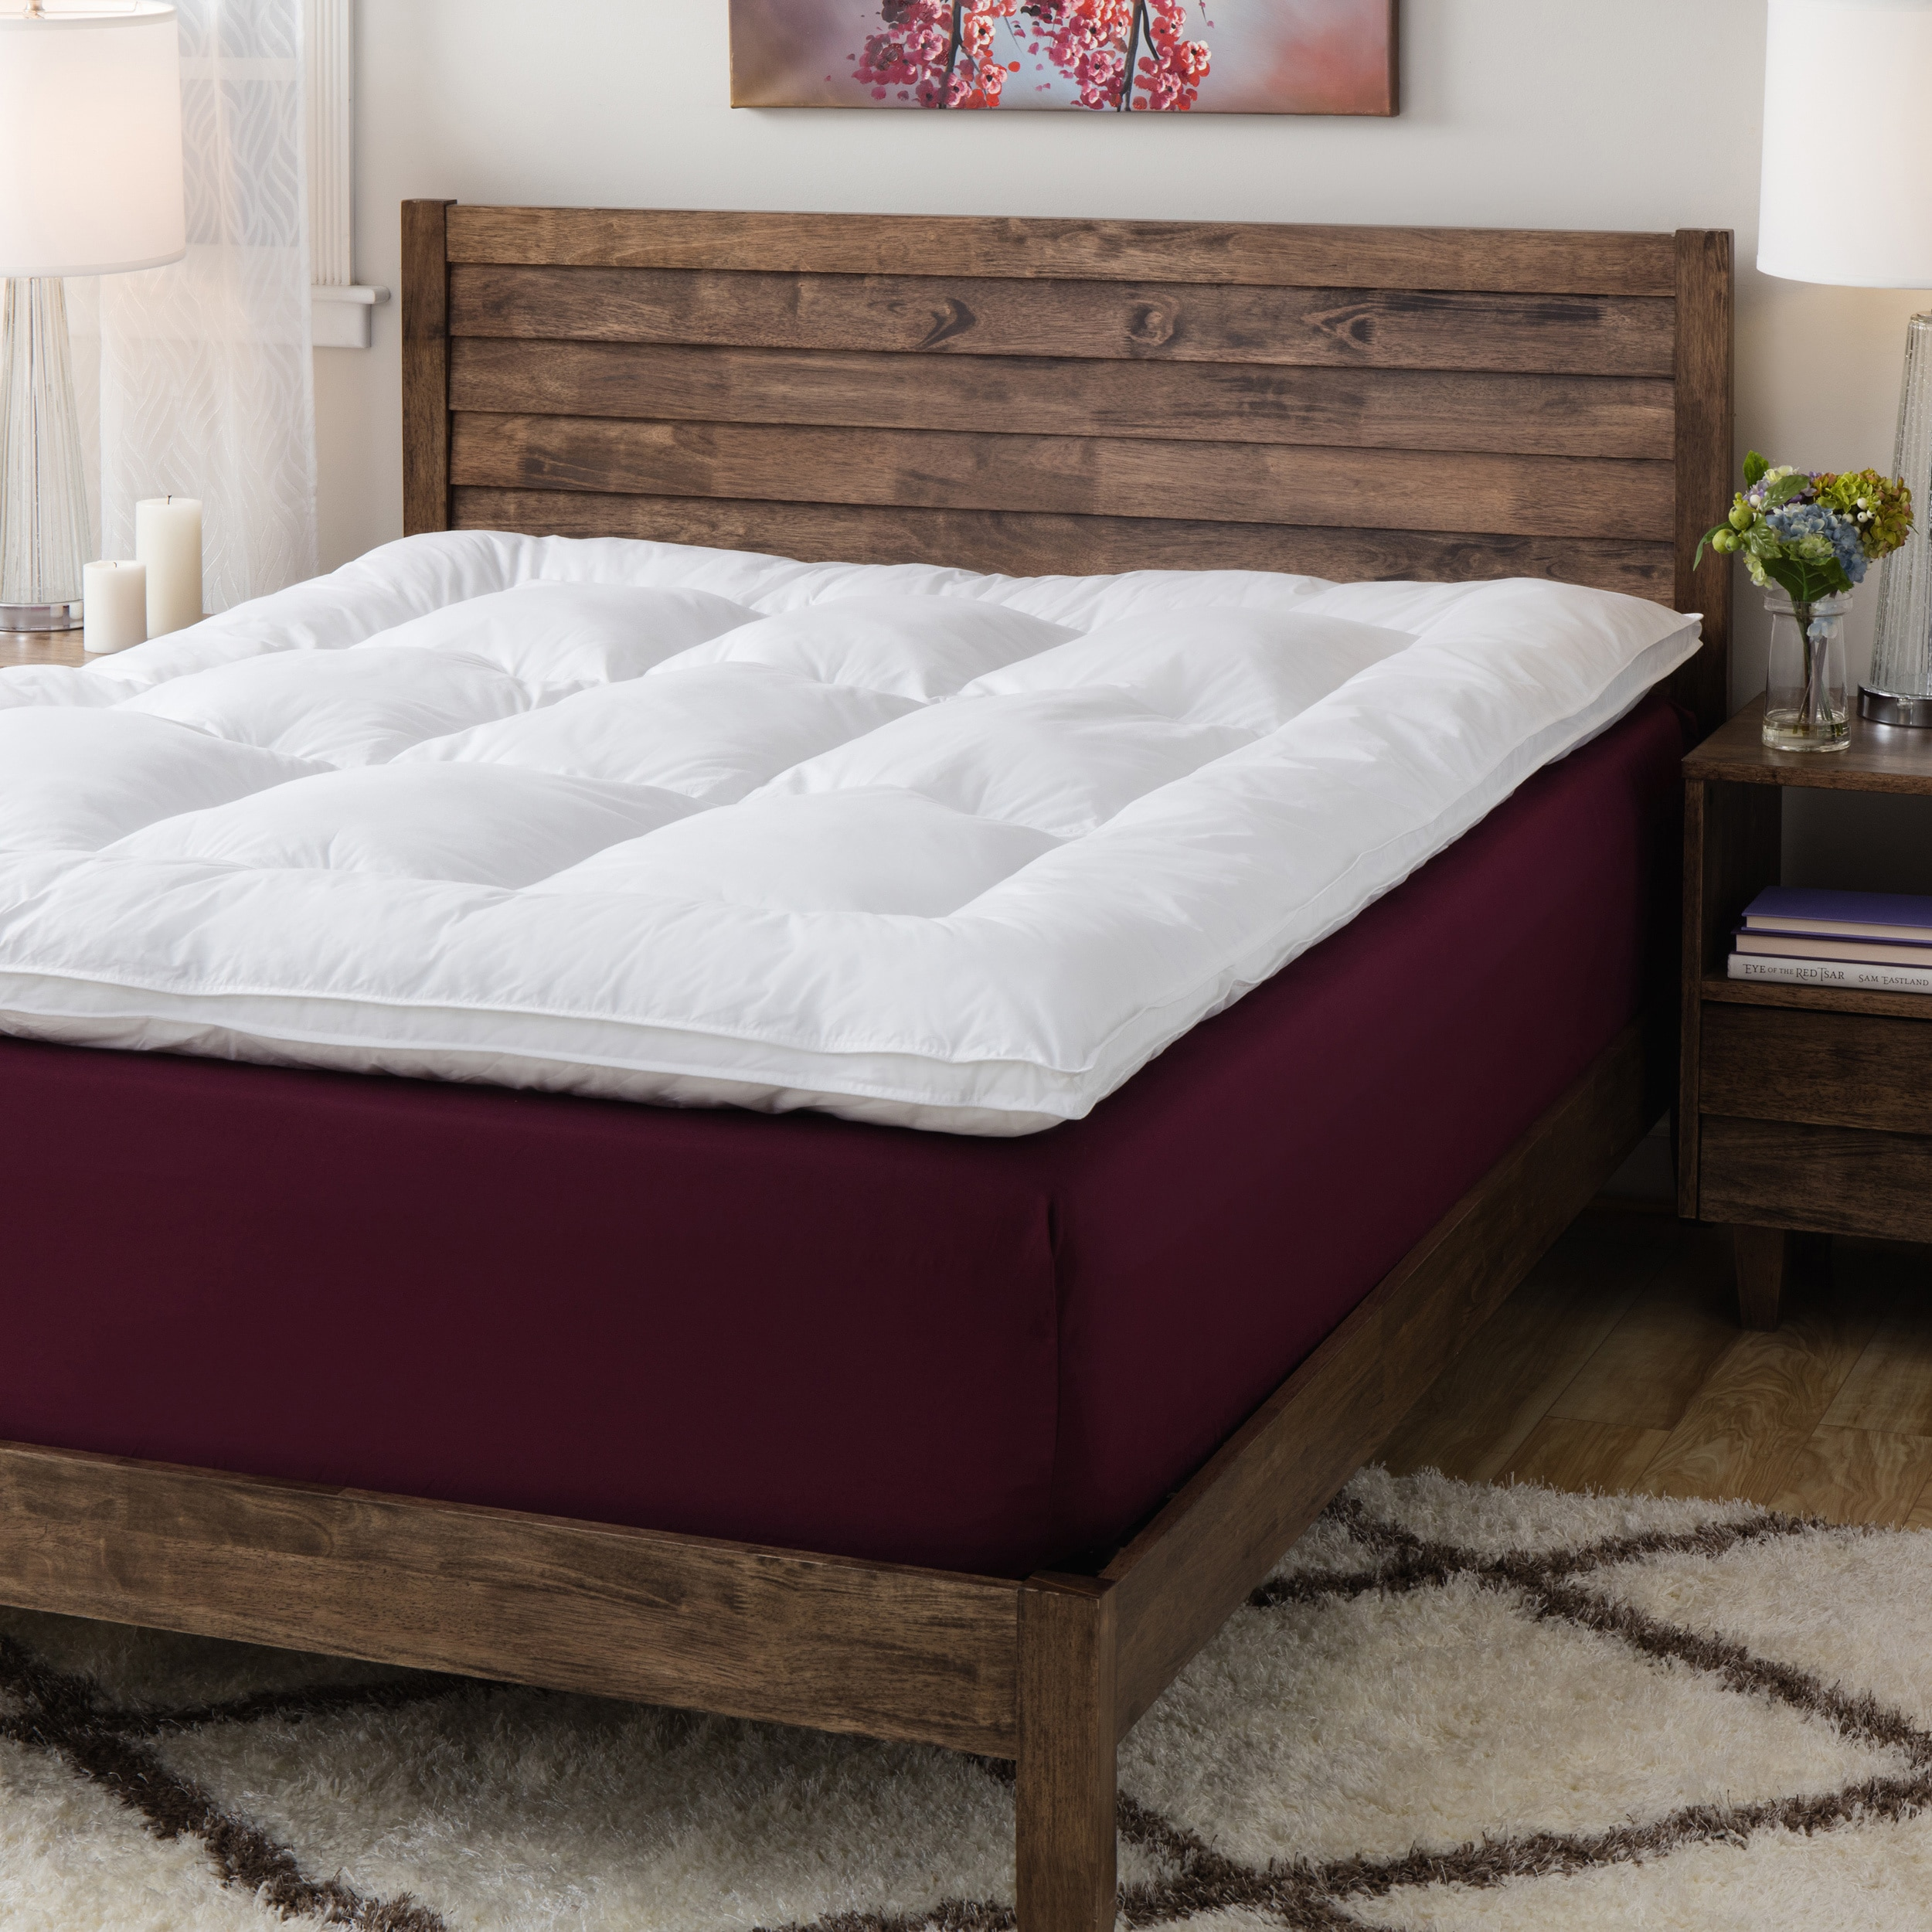 free shredded inch mattress select memory topper bath product white fiber foam today bedding filled overstock shipping and luxury gel